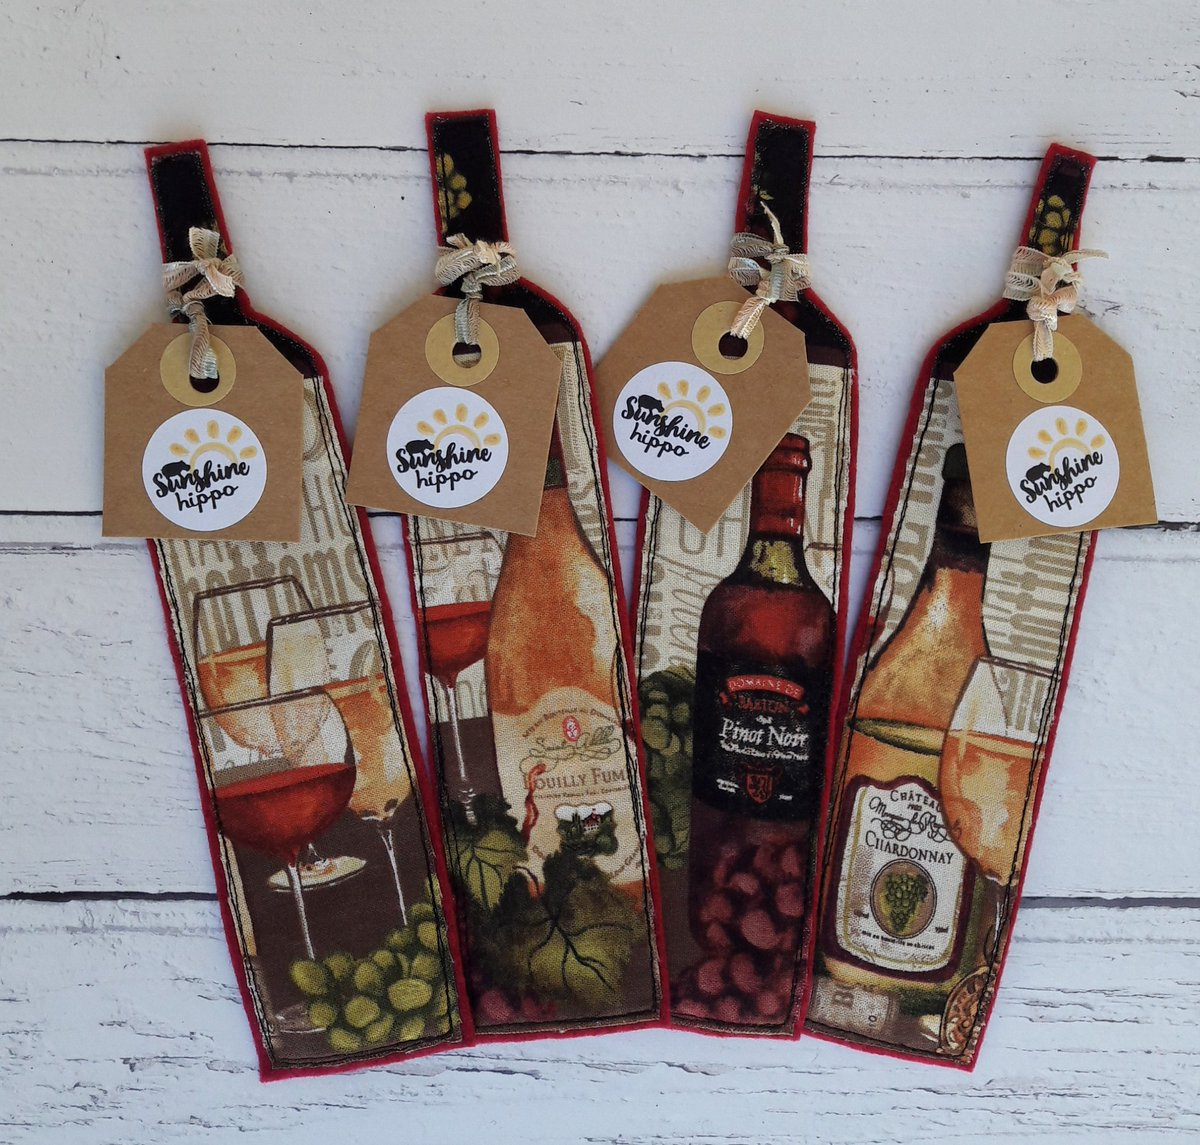 For the wine loving bookworm in your life  #booklover #handmade #giftideas <br>http://pic.twitter.com/G2P5NxzTxR